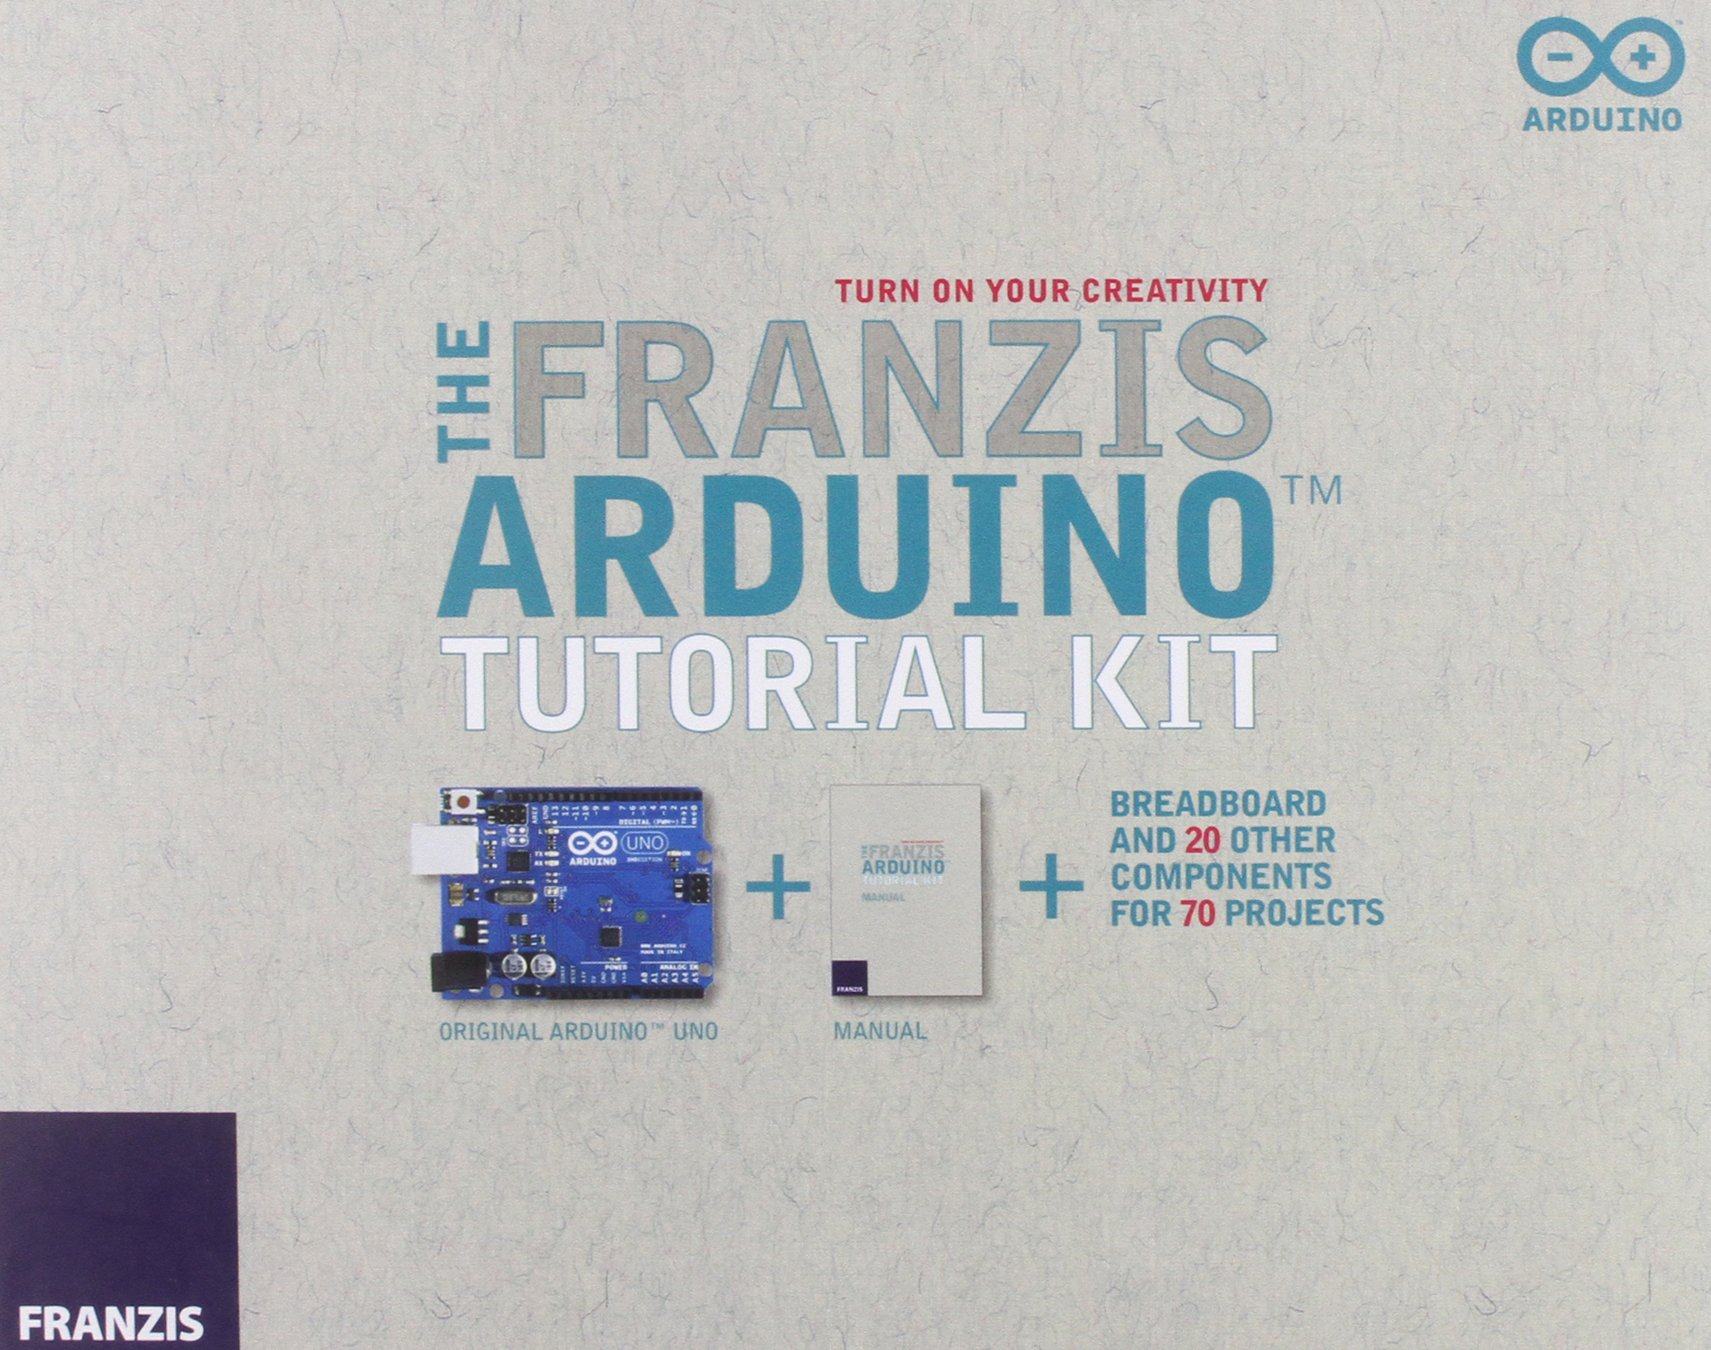 Franzis New Arduino Tutorial Kit & Manual: Amazon.es: Franzis Verlag GmBH: Libros en idiomas extranjeros